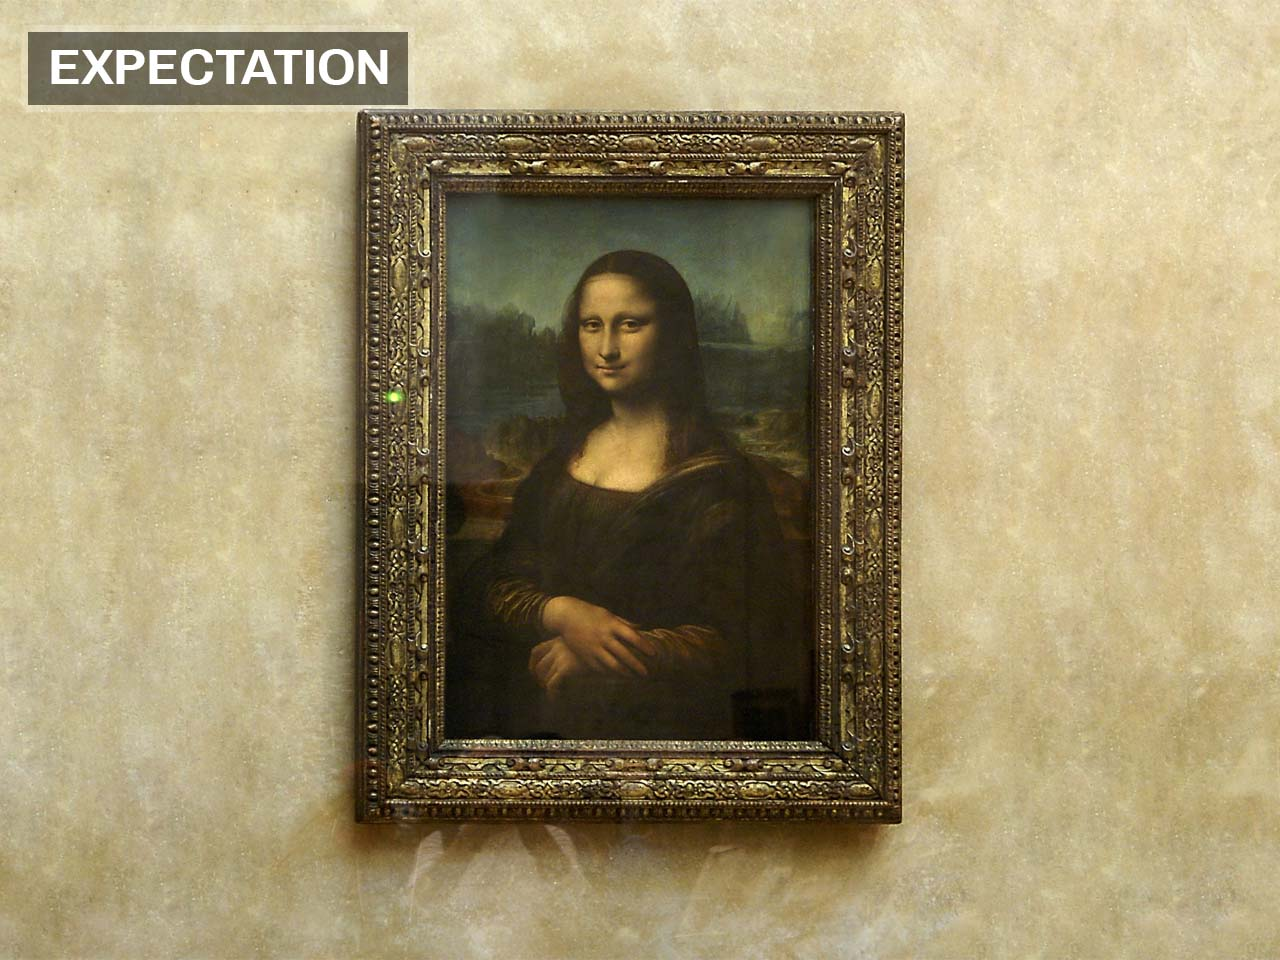 Mona-Lisa,The Mona Lisa is just waiting for you to take that perfect photo.